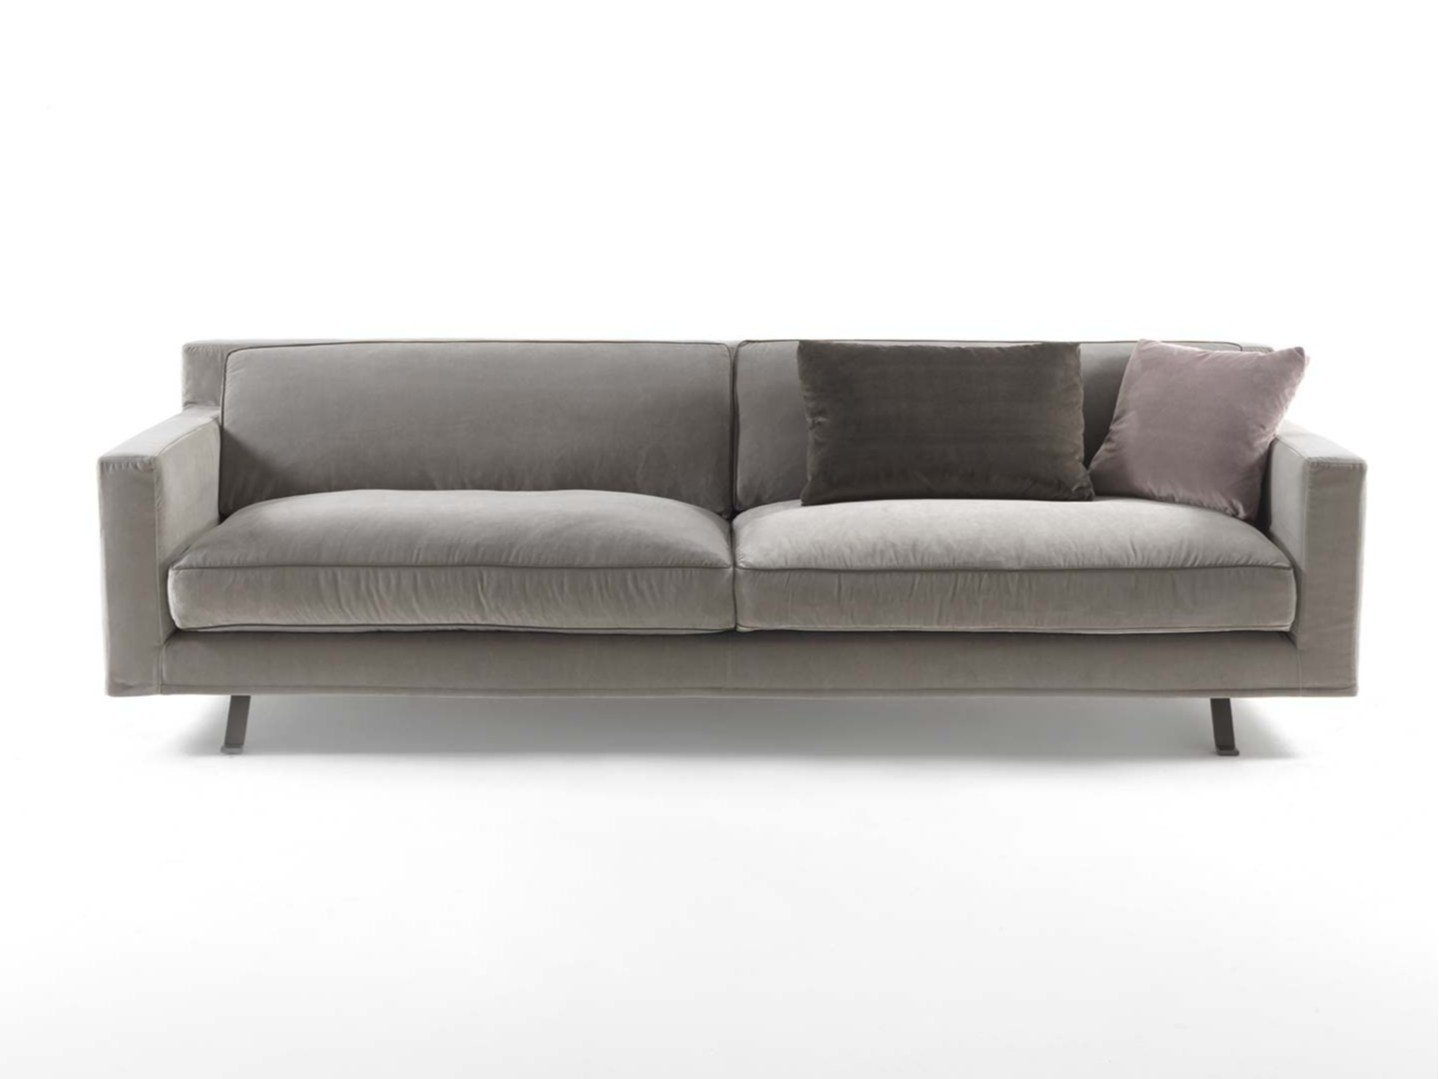 James 4 seater sofa by frigerio poltrone e divani for Poltrone e sofa